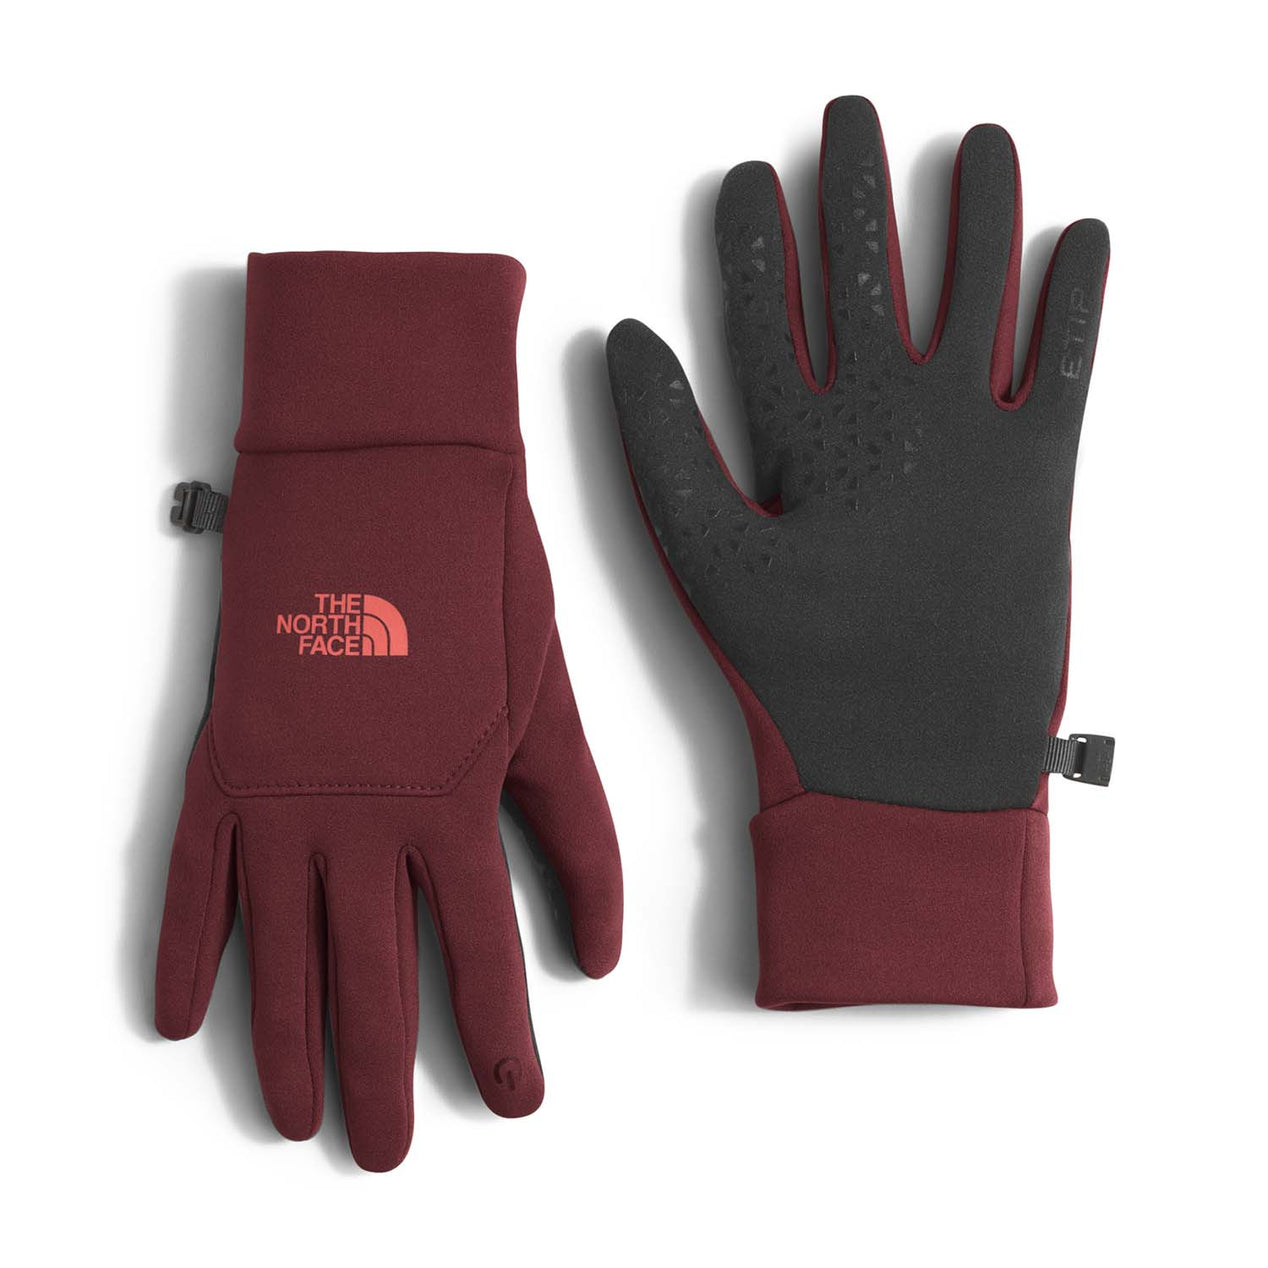 a1ea2496f1 The North Face Women's Etip Glove | Altitude Sports